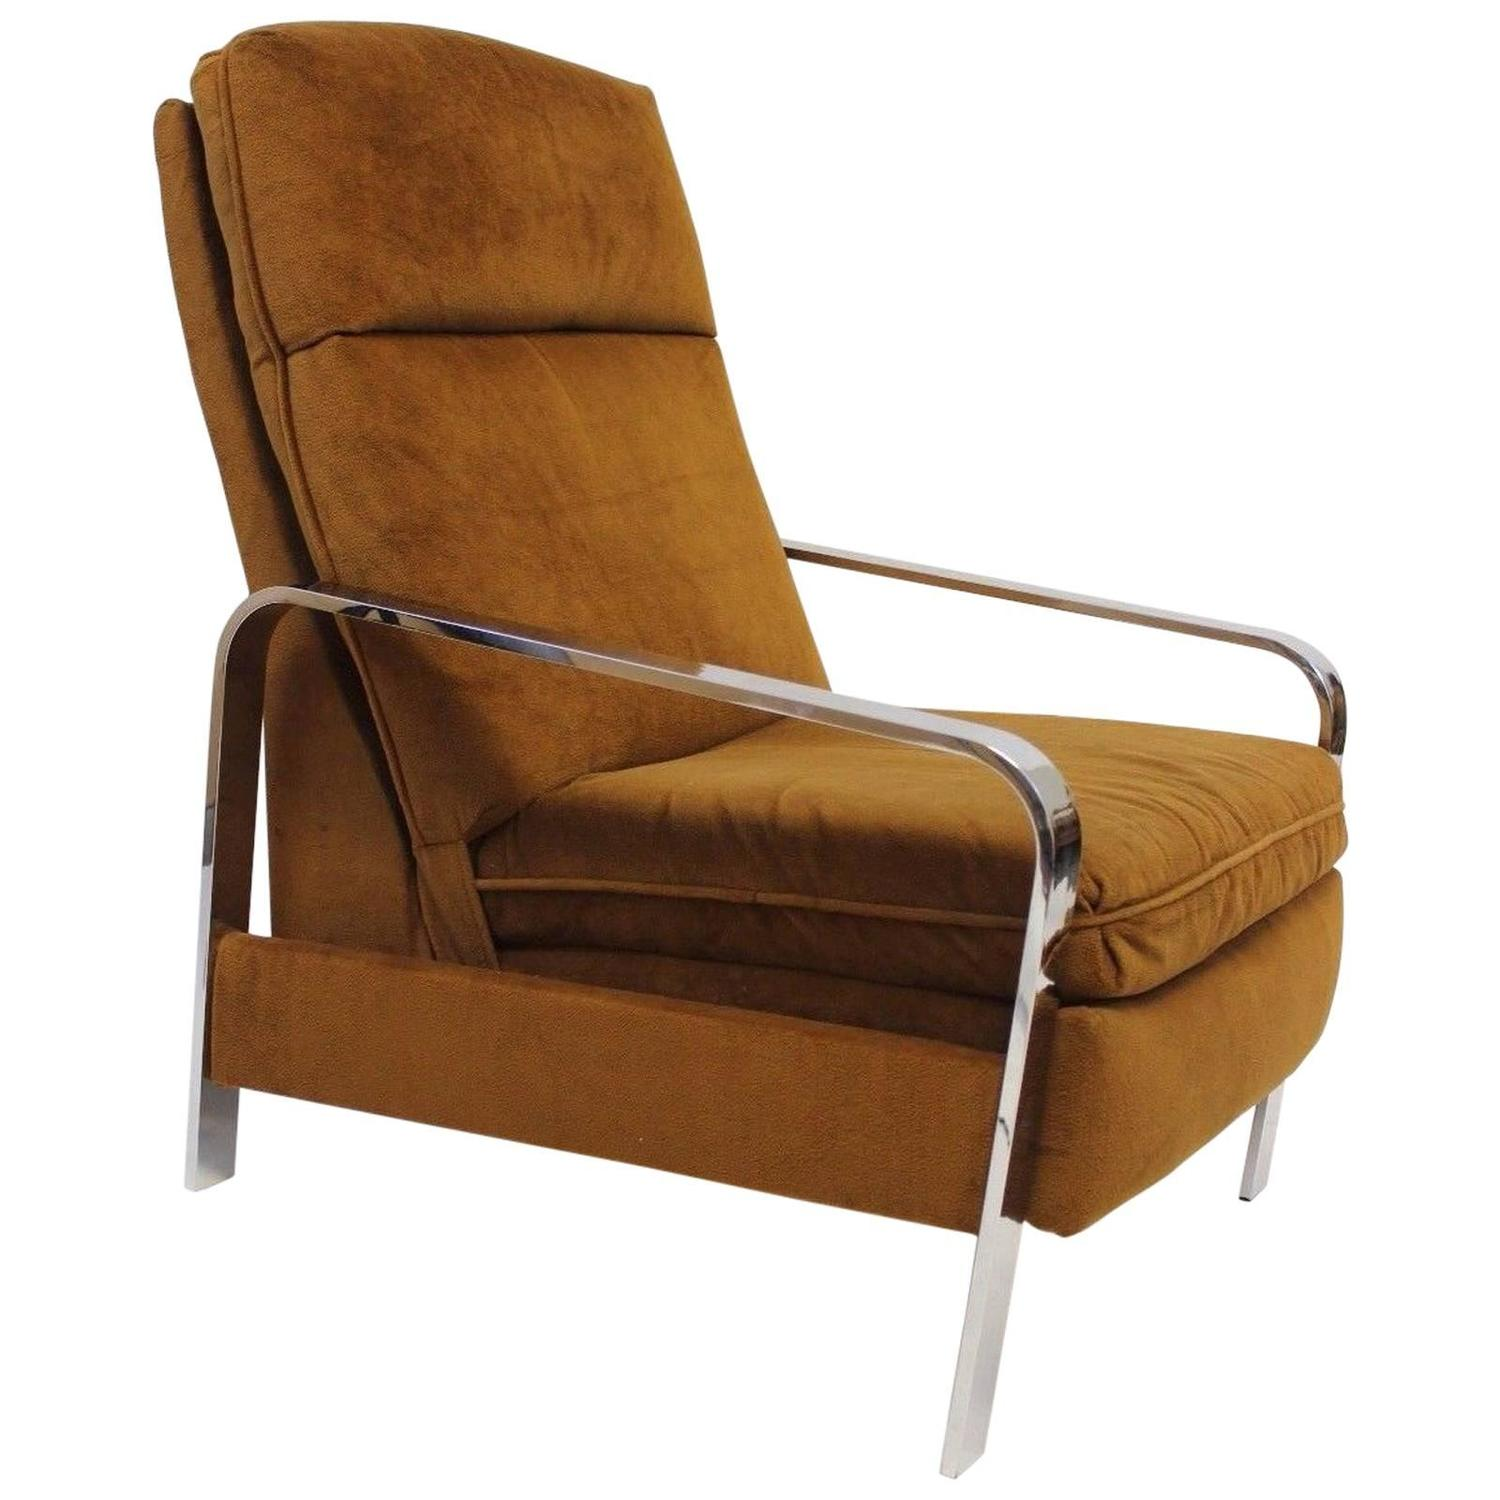 Milo Baughman Reclining Lounge Chair for Design Institute of America at 1stdibs